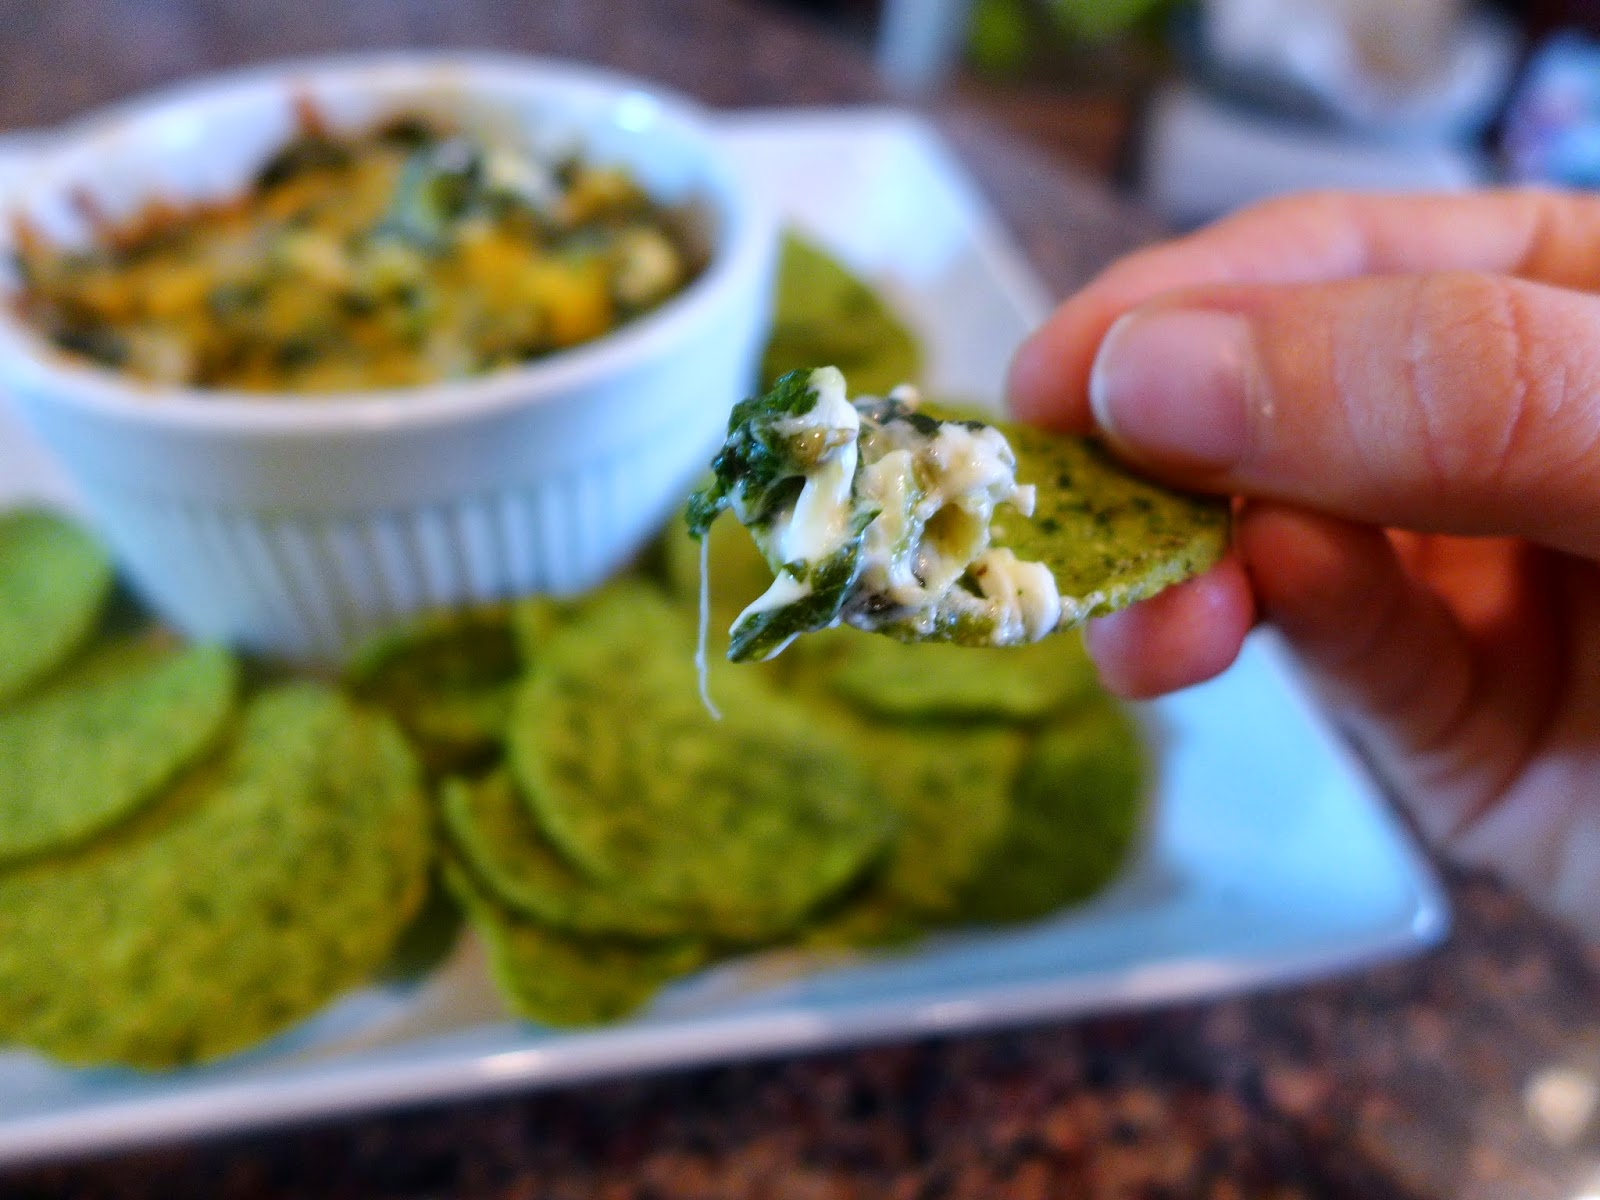 You know you want Spinach and Artichoke Dip!